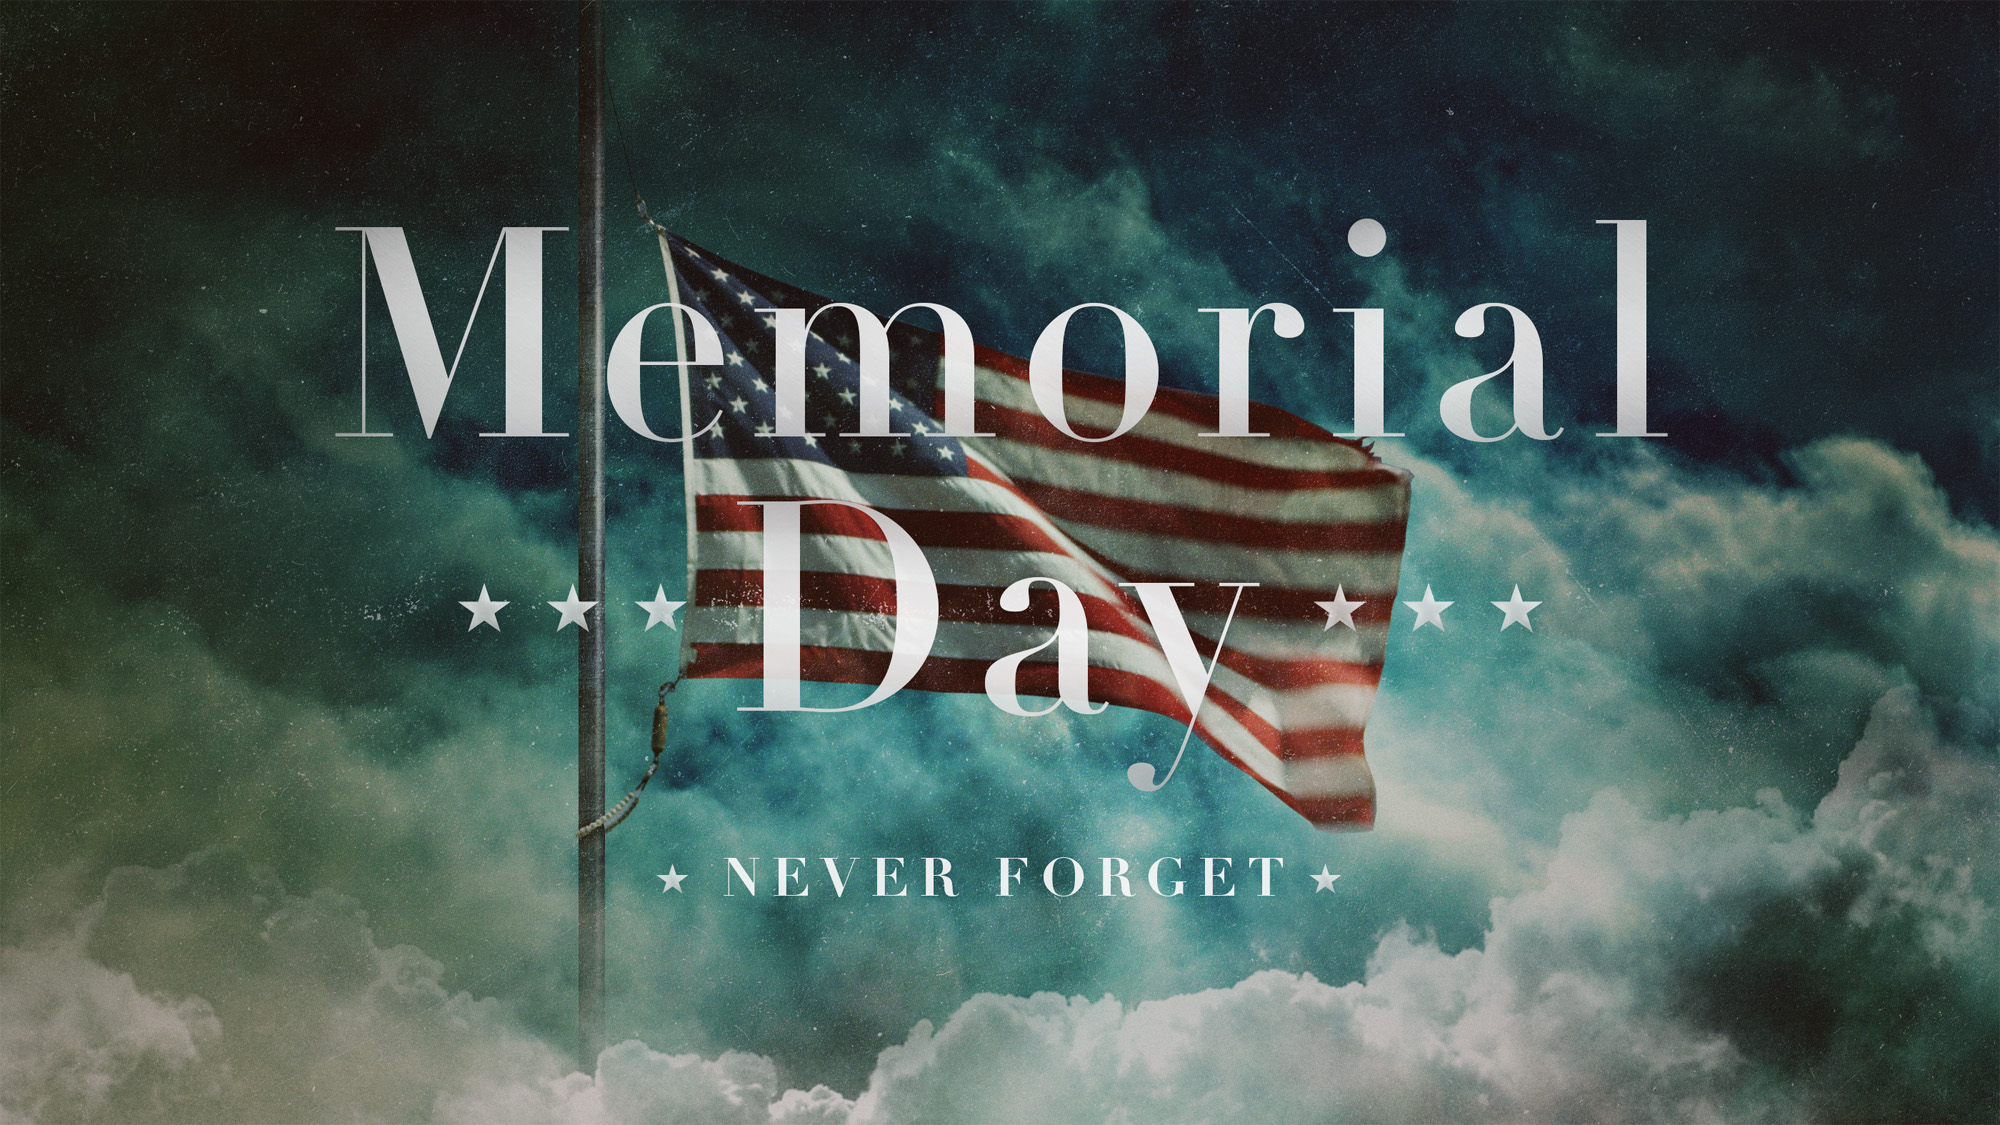 a memorial day of my life Find memorial tributes information on condolences, sympathy messages, eulogies, poems and songs topics get articles and advice from your tribute experts manage a memorial.